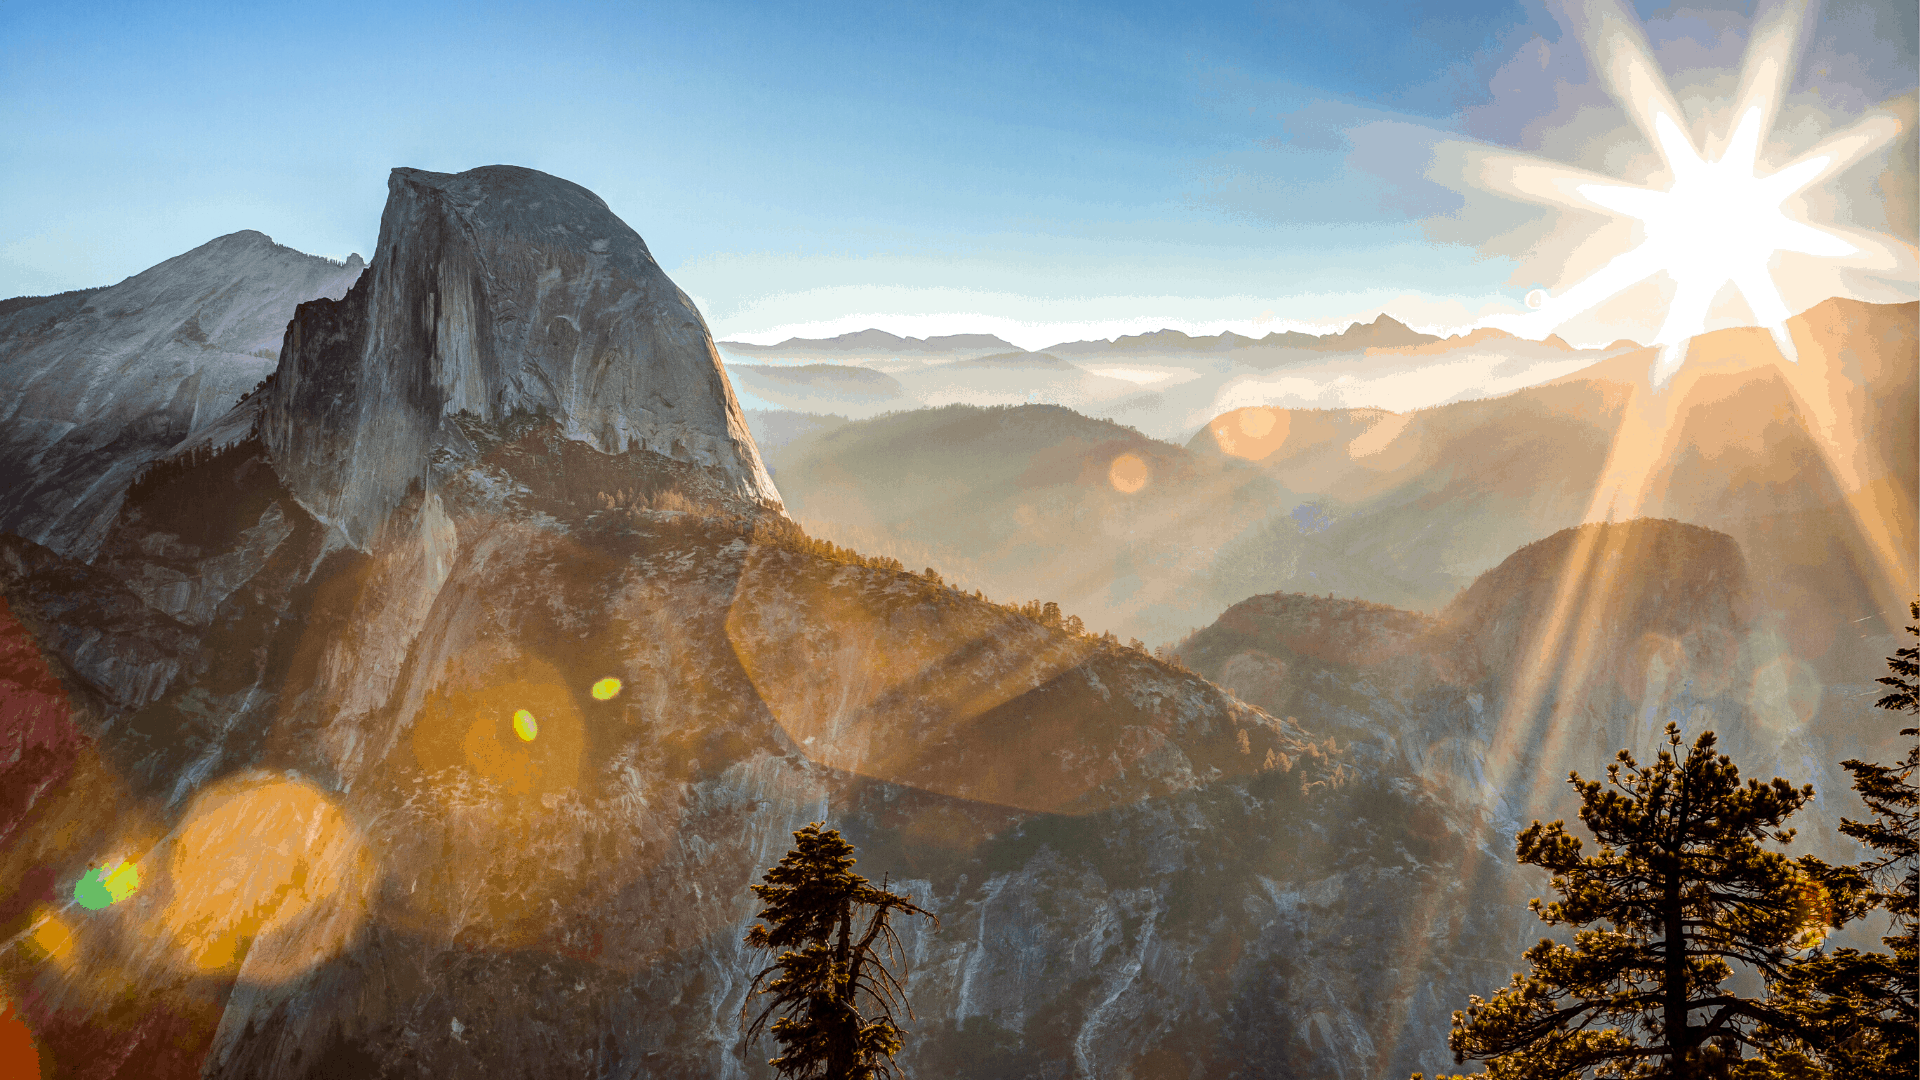 The top 10 places to visit in the West Coast | Lake Tahoe | Mountains of Alaska | Multnomah Falls | Hawk Hill in Marin County Golden Gate Bridge | Painted Hills Oregon | Redwood National Park | Big Sur | Whidbey Island | Yosemite National Park | Sonoma | wine country | Idyllic Pursuit